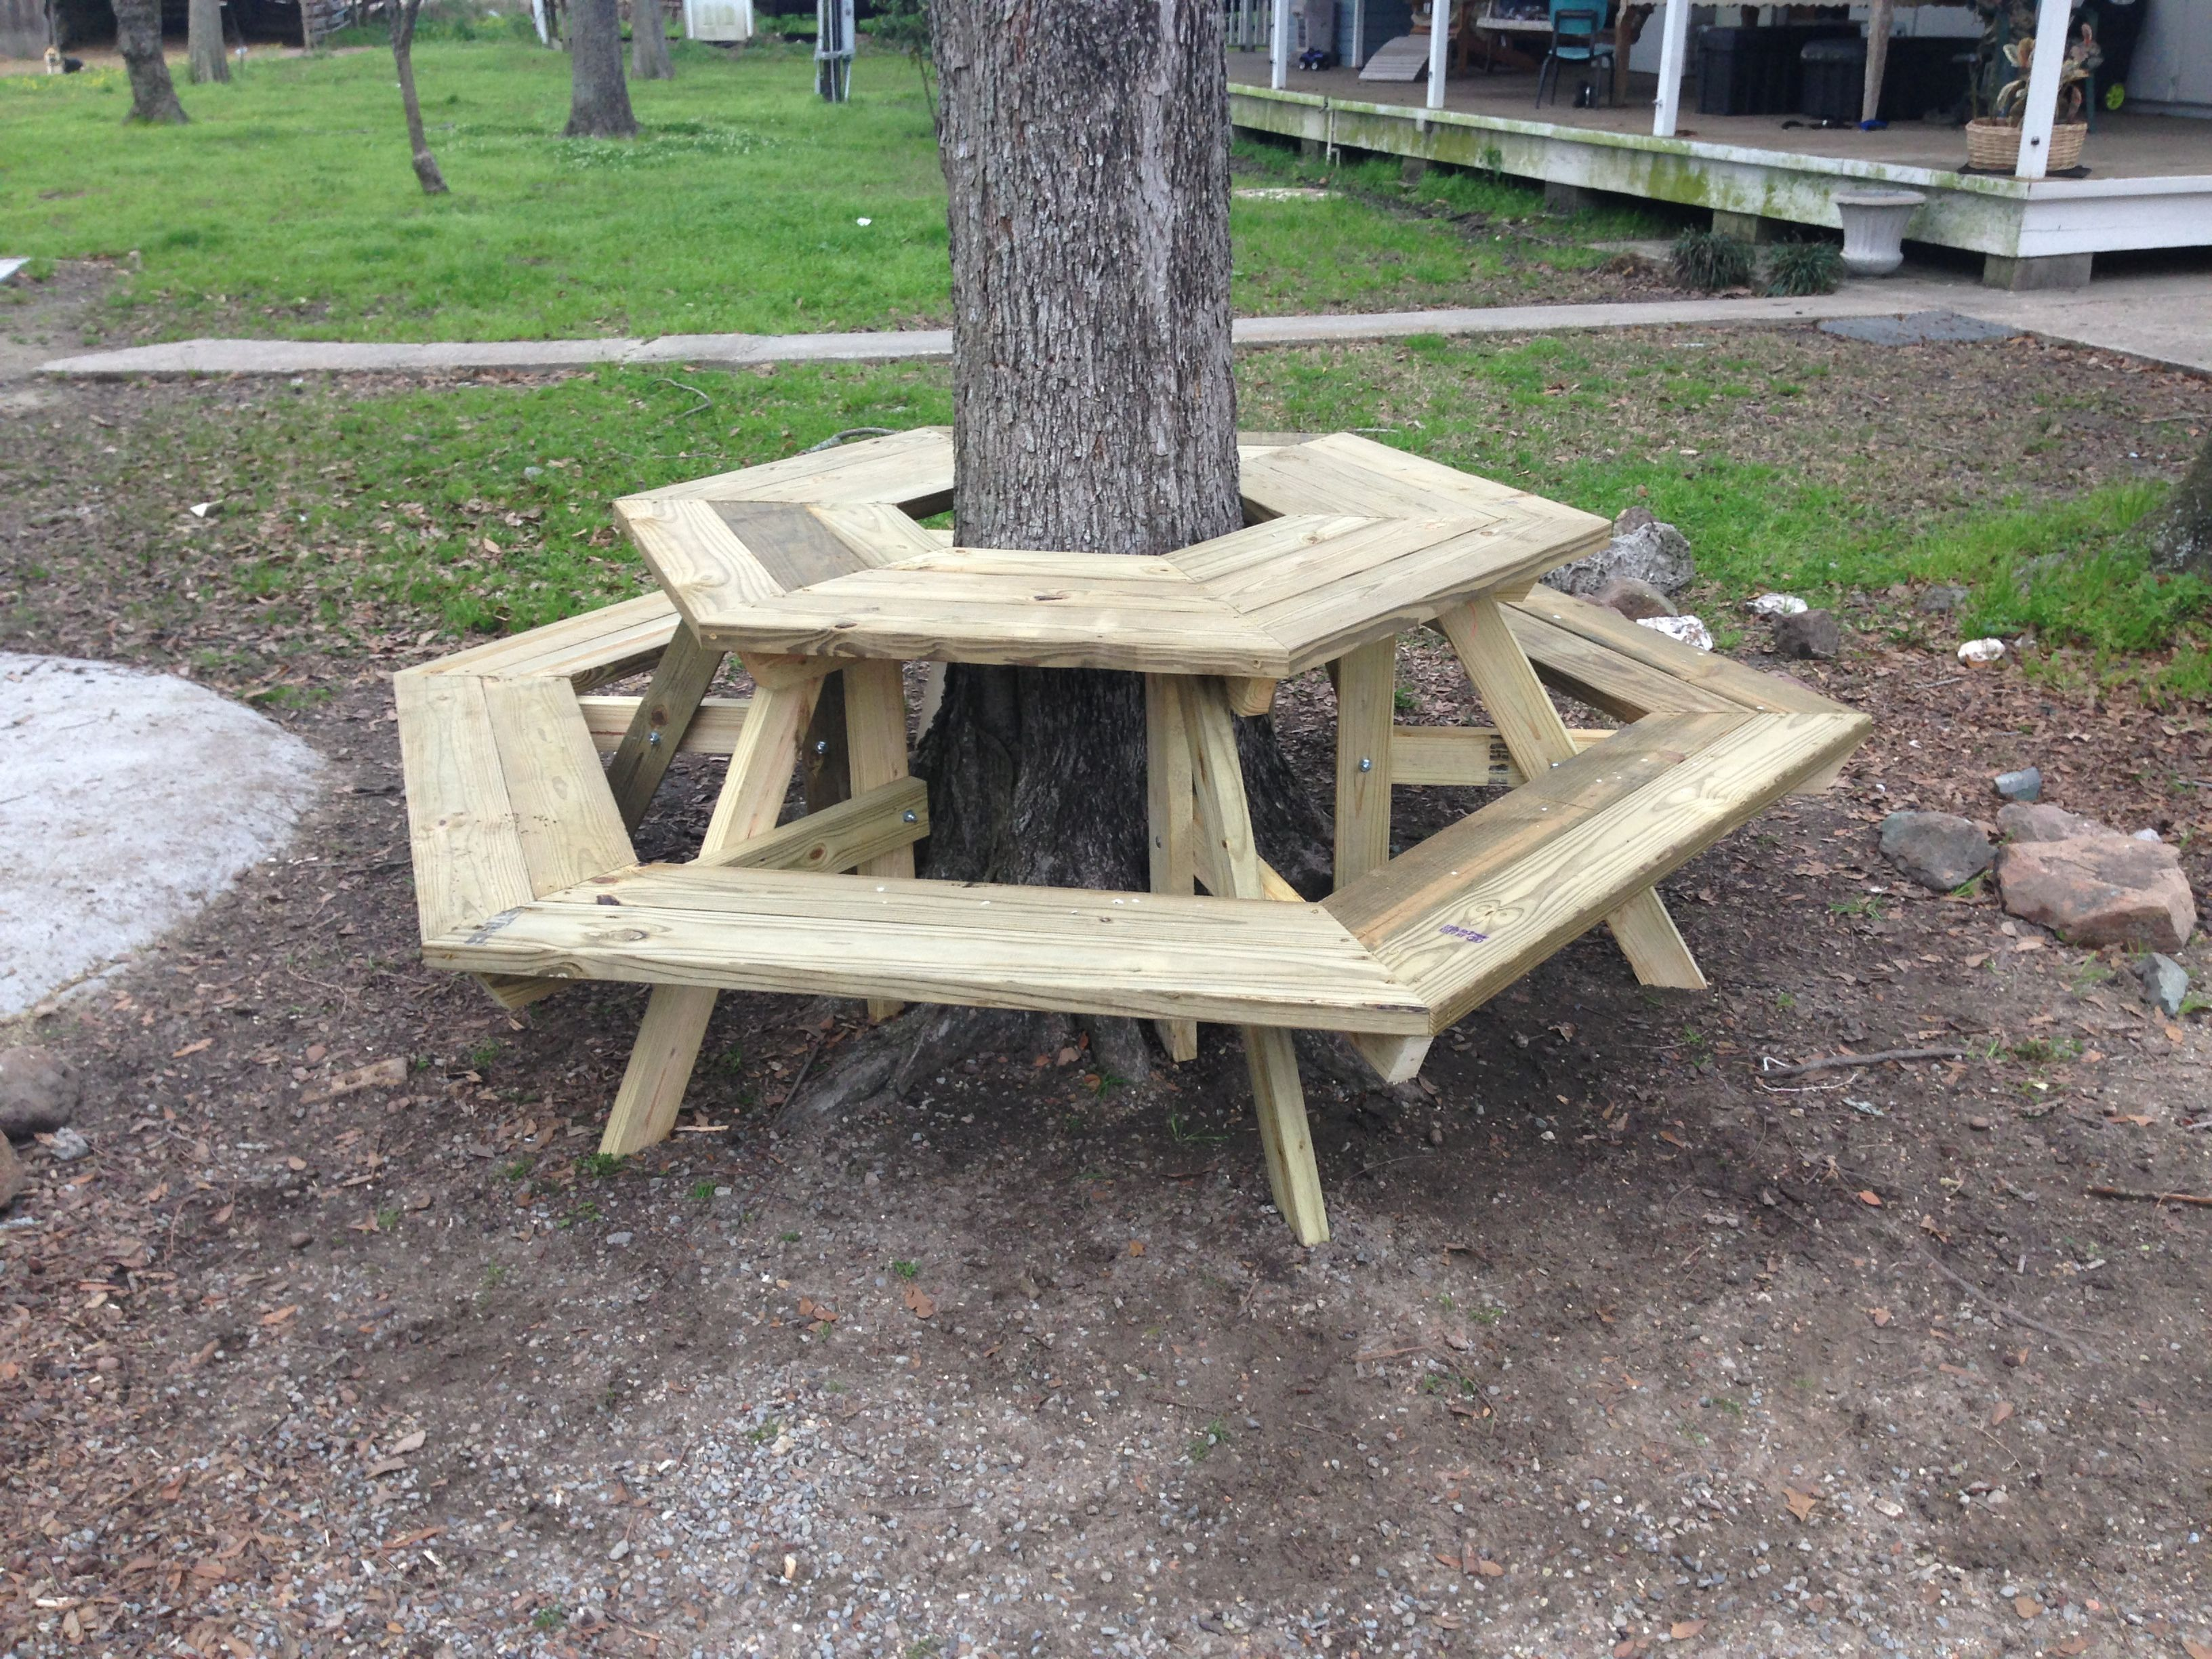 The Picnic Table Around A Tree I Built Today Diy Pinterest Picnic Tables Picnics And